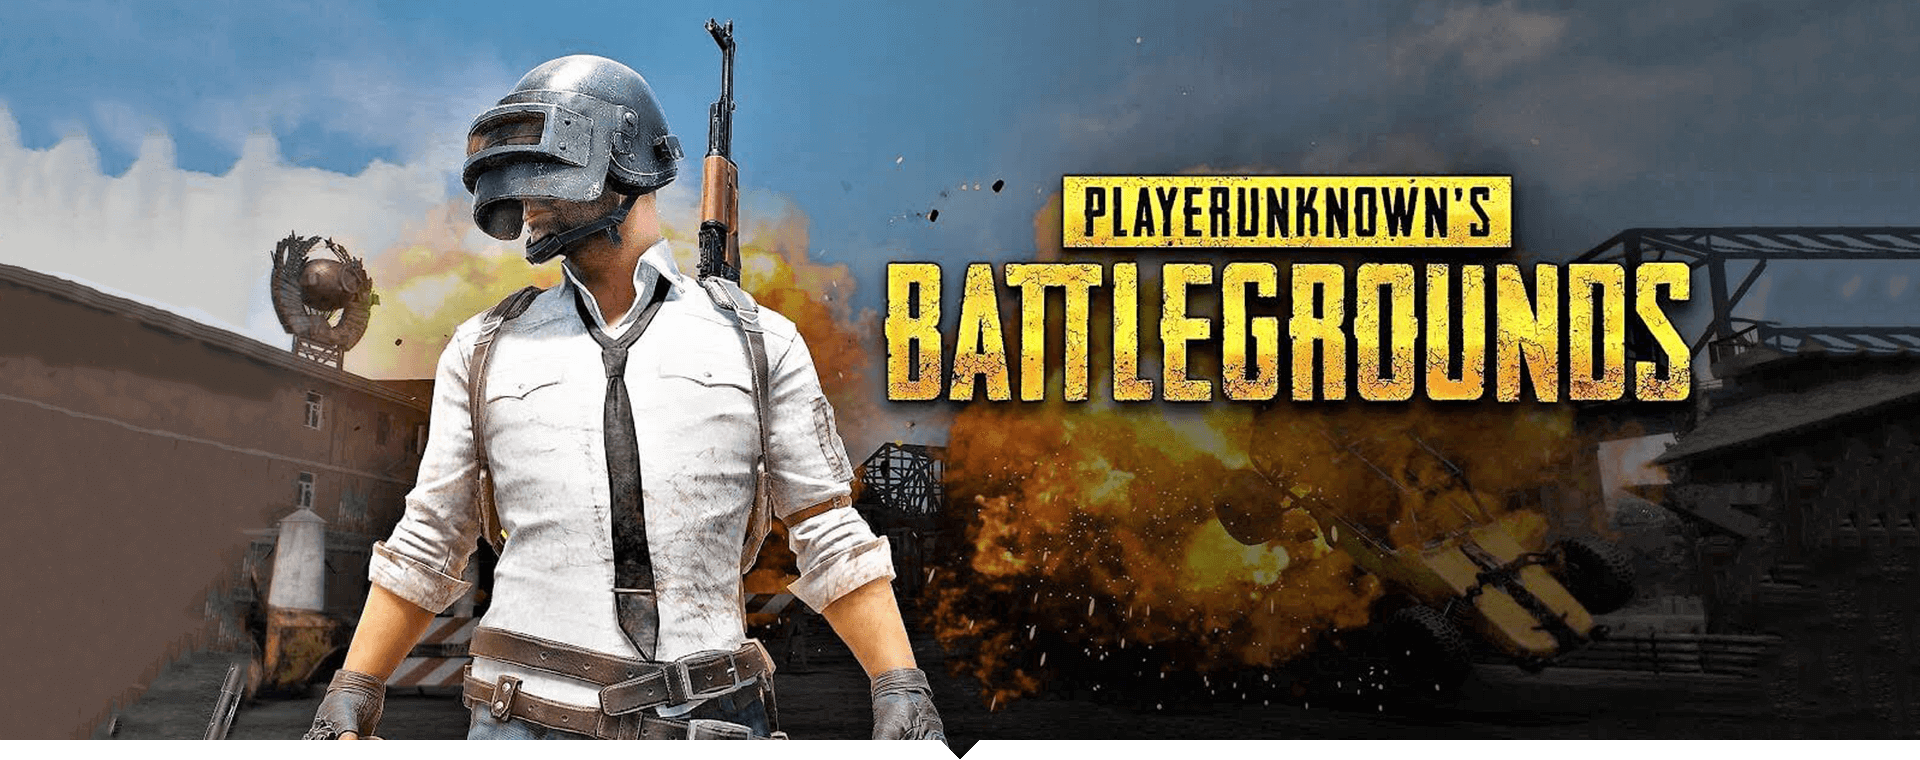 How To Play PUBG on PC via MemuPlay Emulator - Noman Ali